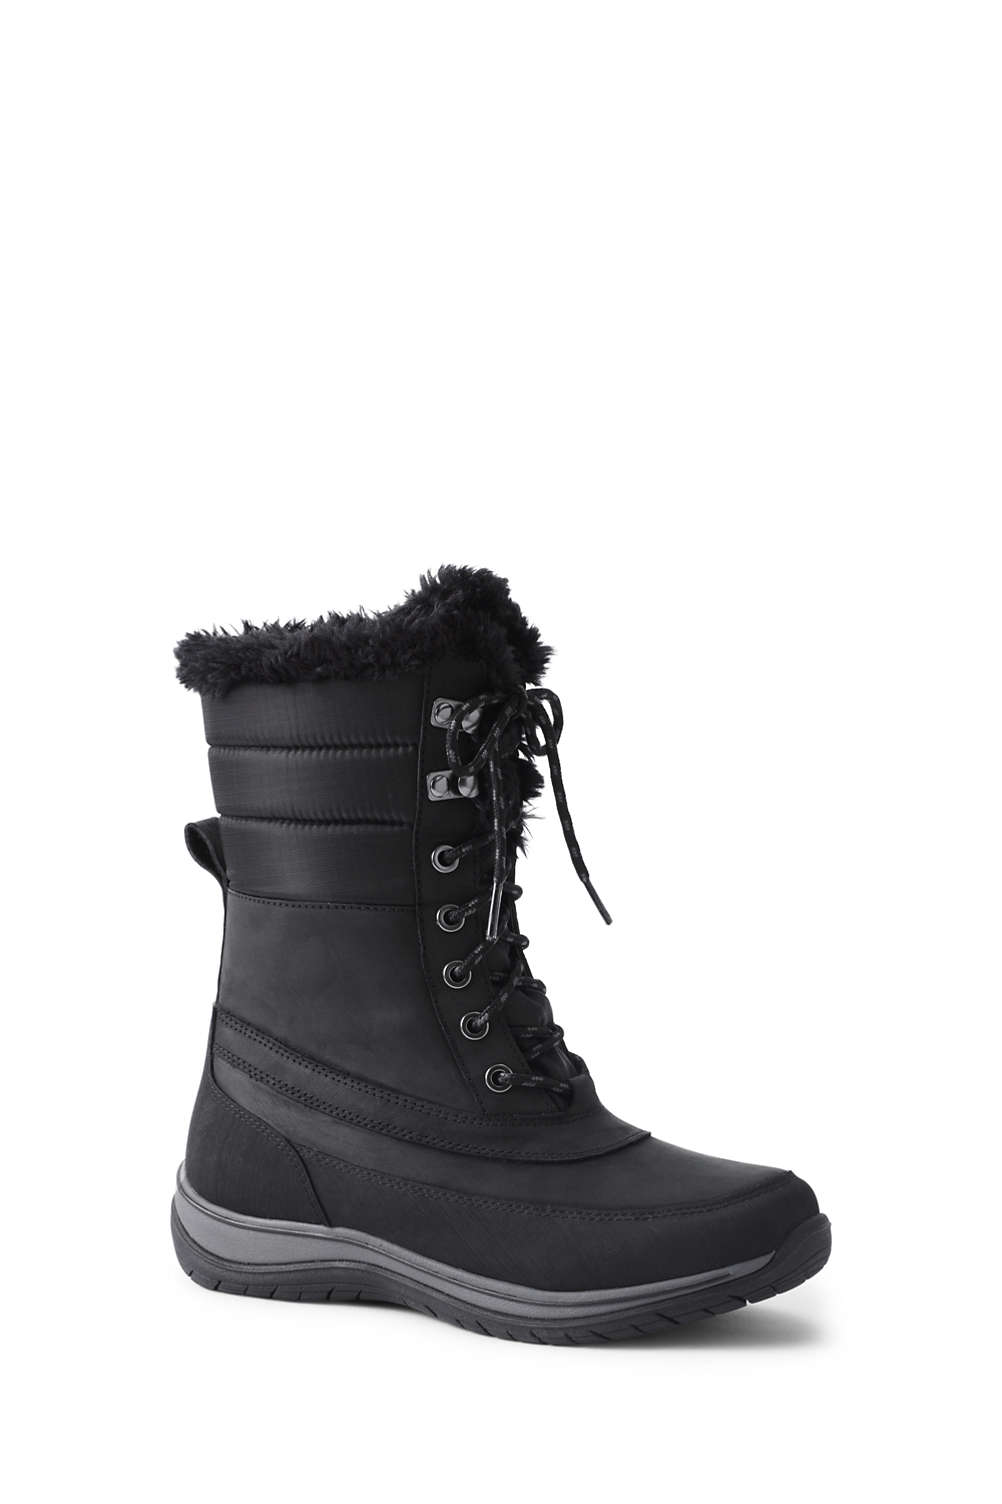 28478c30274ed Women's Expedition Winter Snow Boots from Lands' End